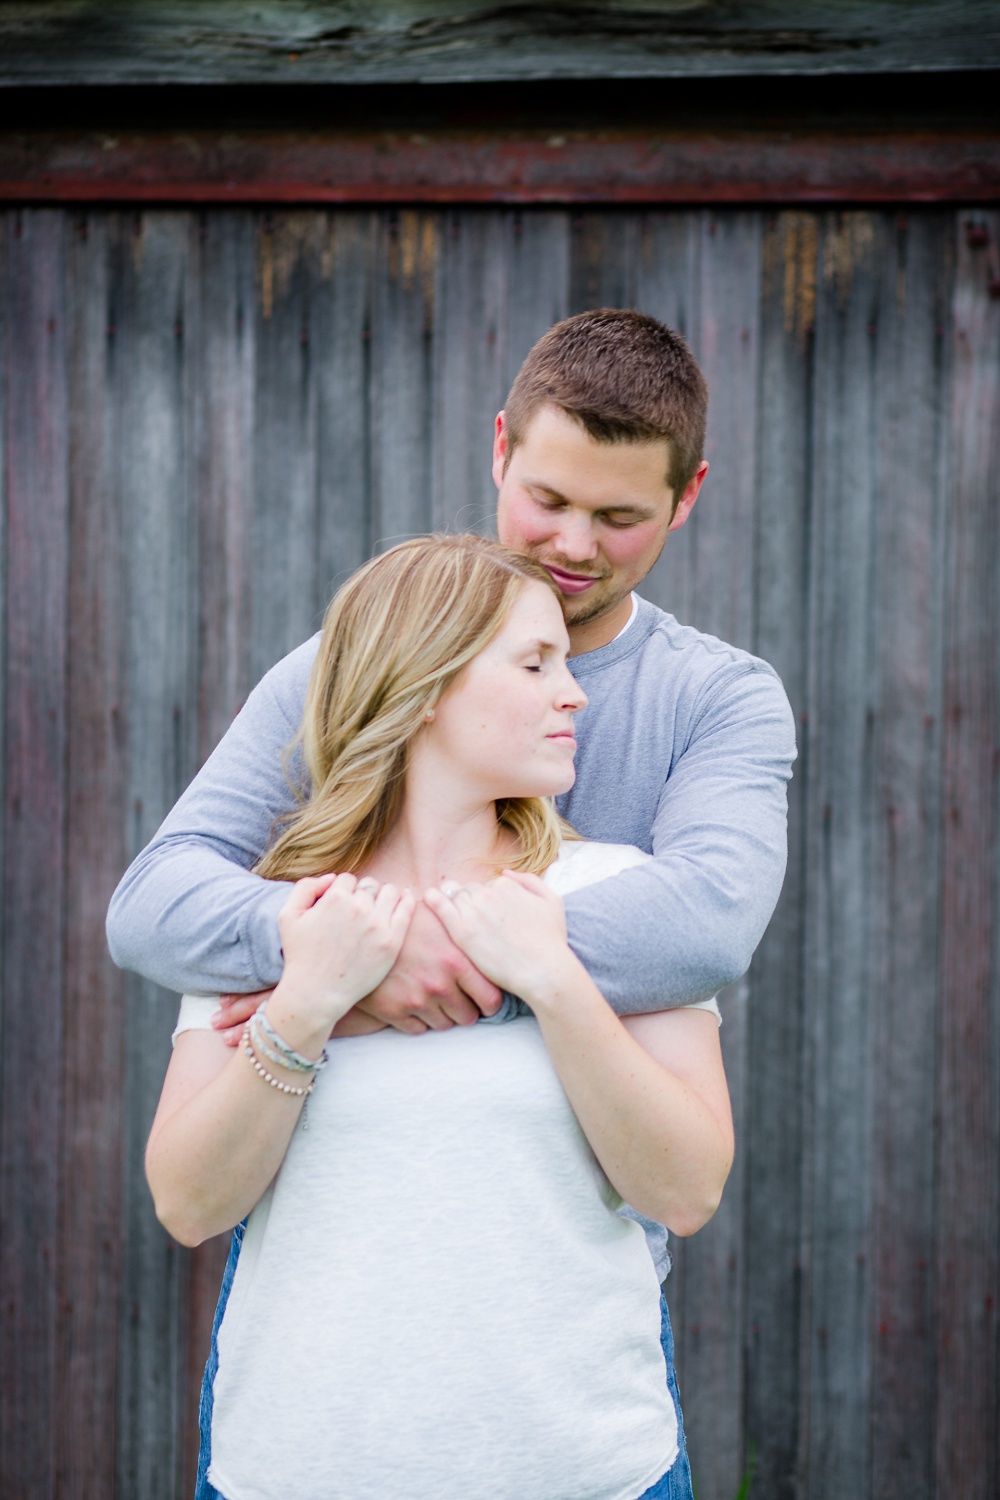 Couple snuggling in front of old barn wood | Outdoor, country styled engagement session near Audubon, MN | Amer Langerud Photography